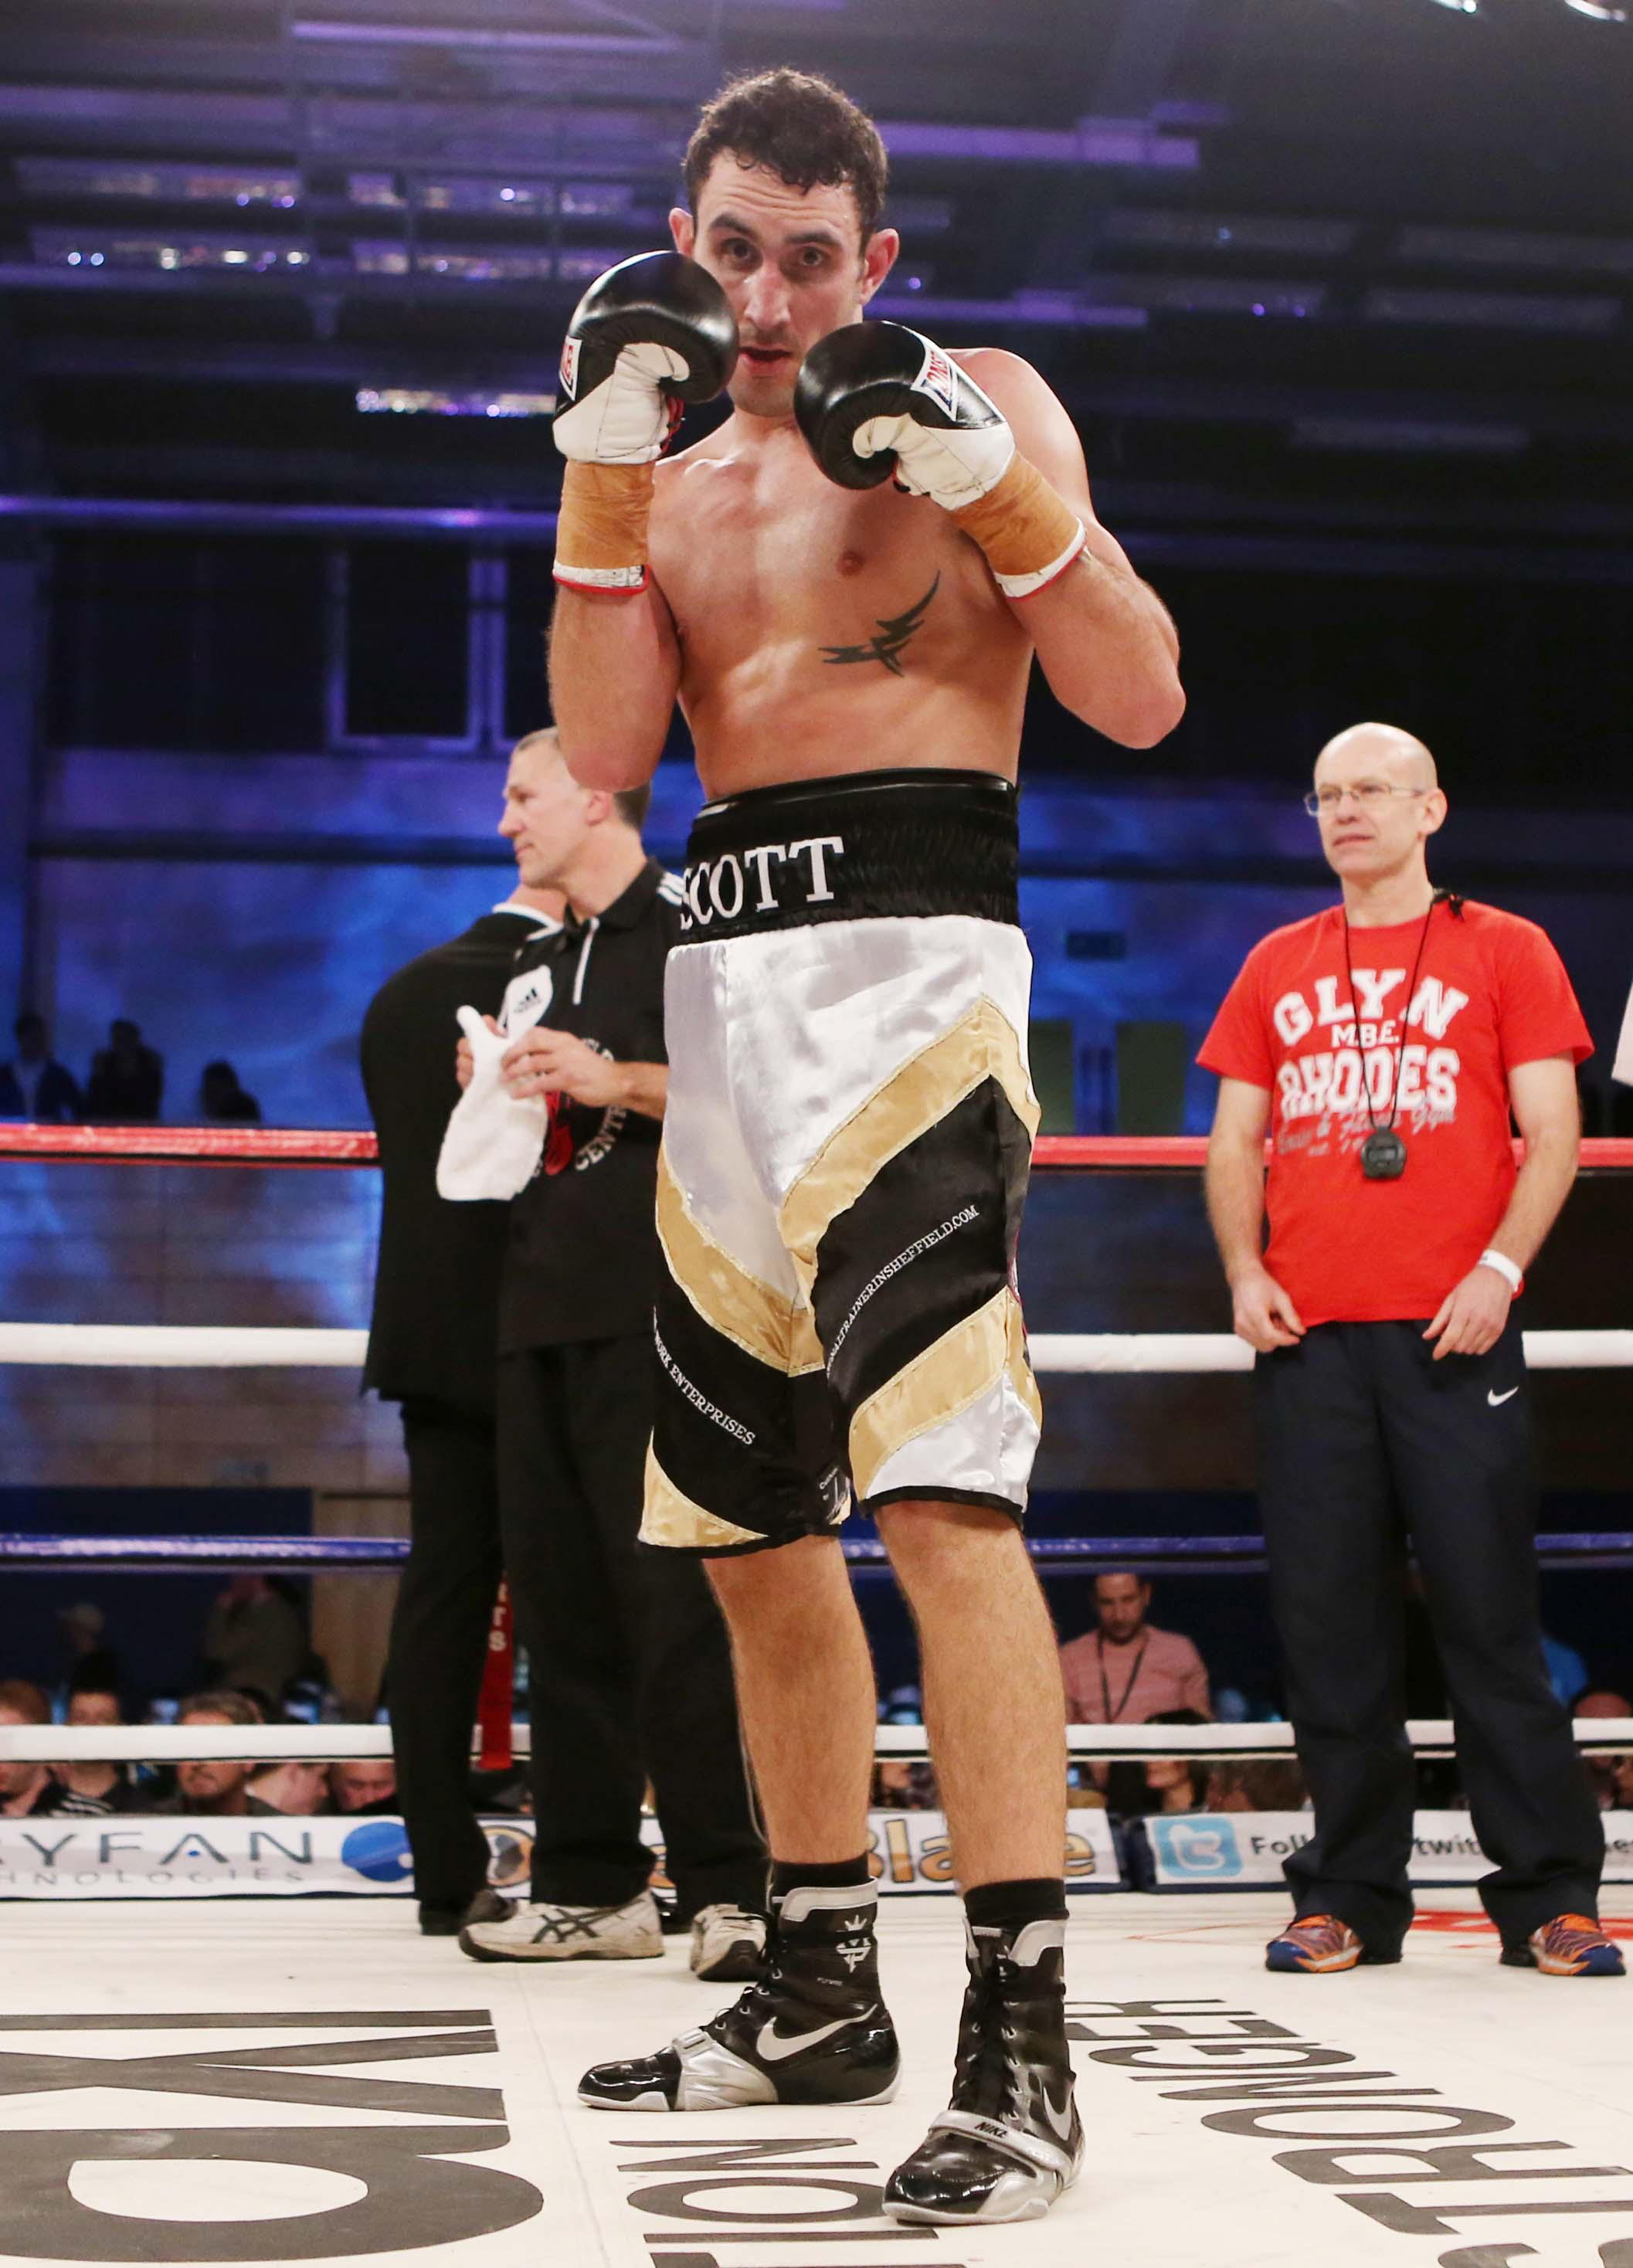 Scott Westgarth will be remembered through Dec Spelman's promising fight career